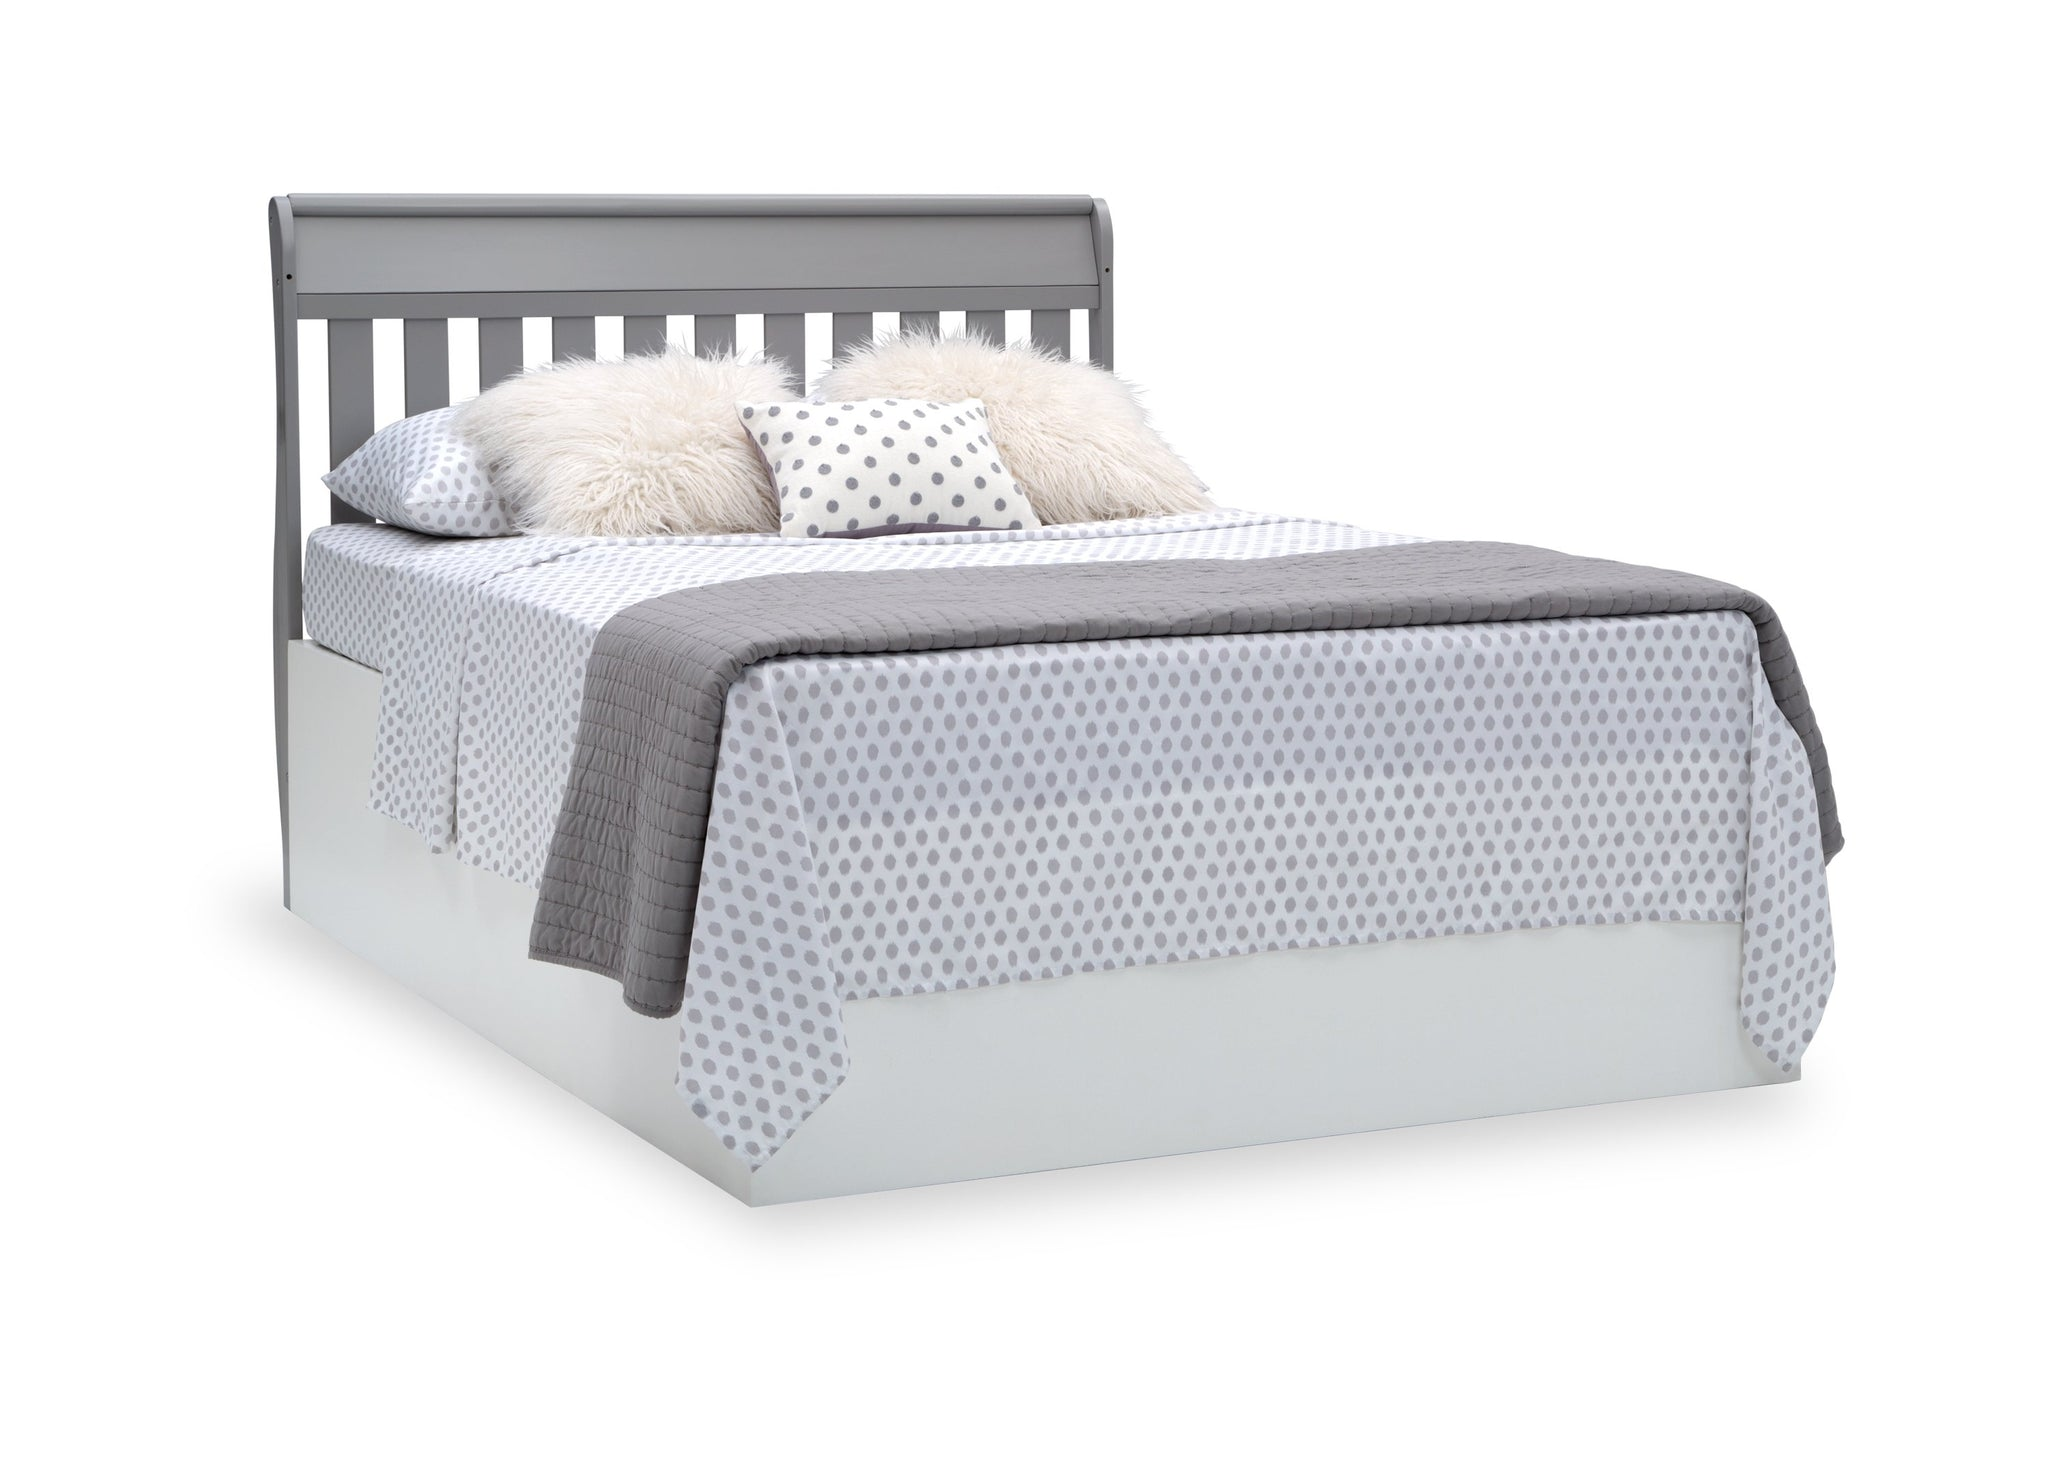 Delta Children Grey (026) Bentley S Series Deluxe 6-in-1 Convertible Crib, Right Full Bed with Headboard Silo View